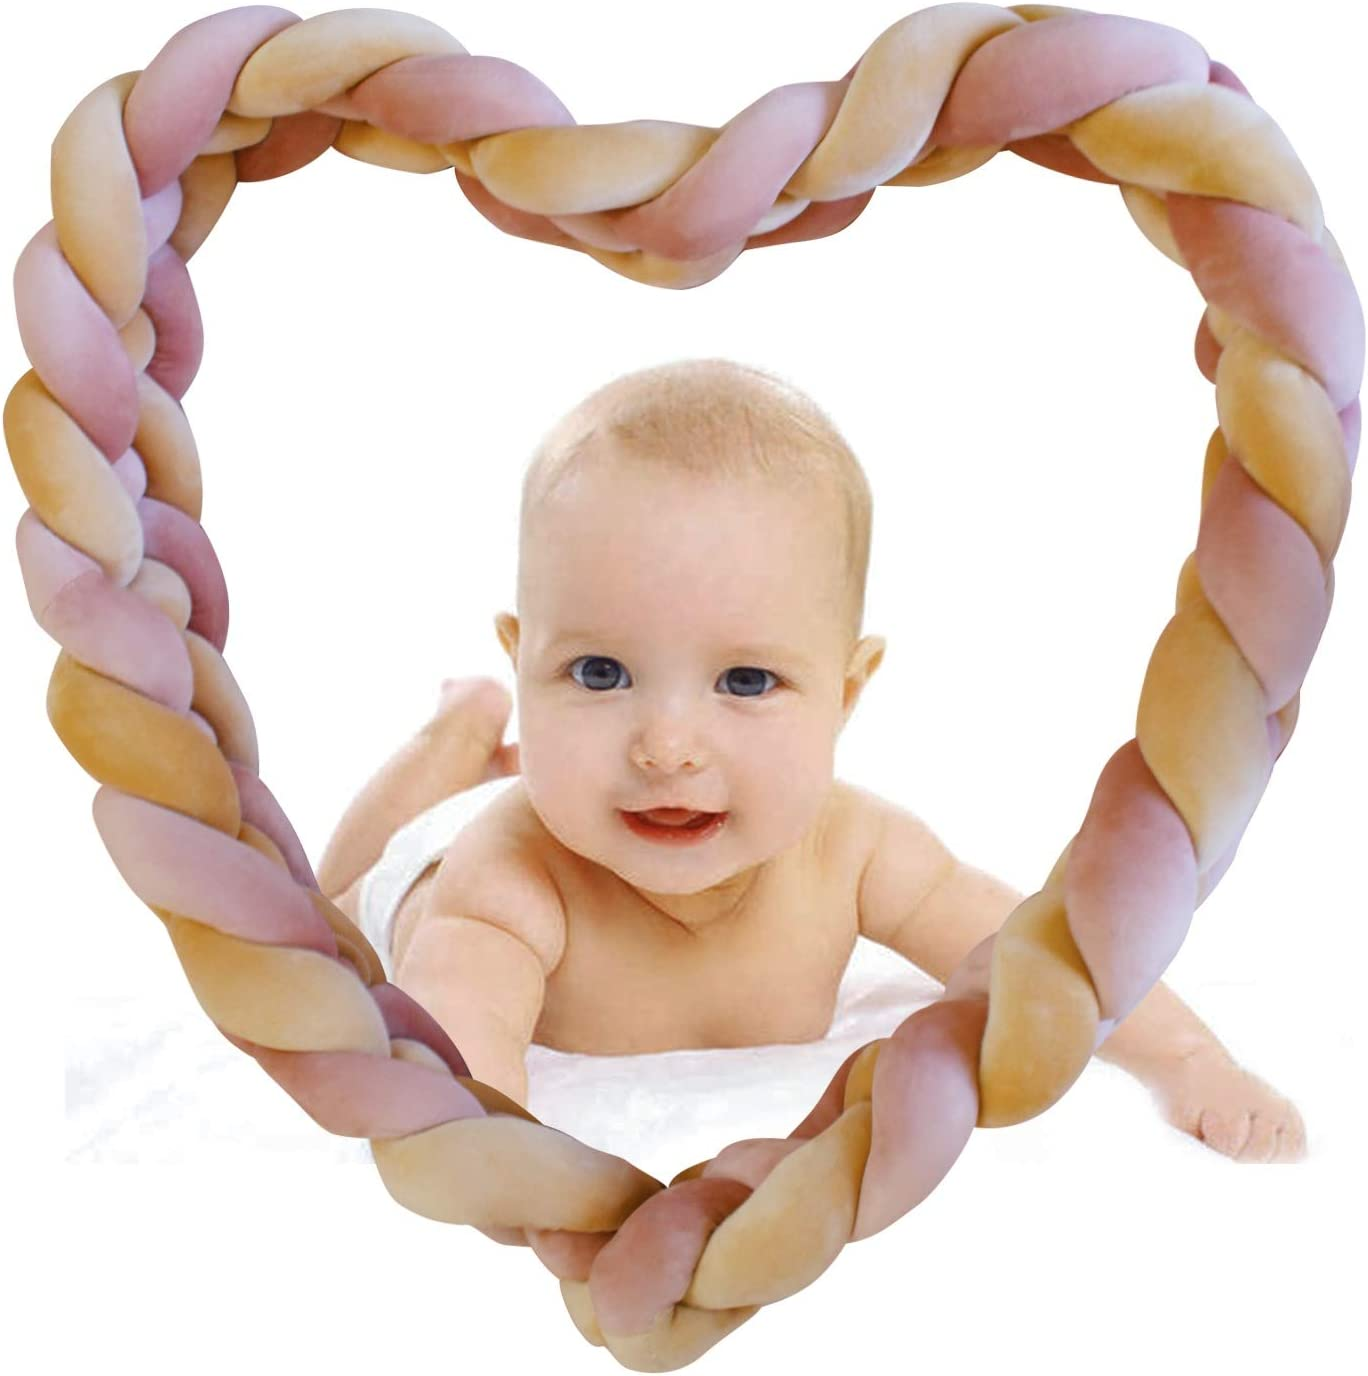 Color : Beige+White+gray+warmpink, Size : 220CM Vinggood Cot Bumper Braid Pillow Baby Head Guard Bumper Knot Braid Pillow Cushion for Baby Bed